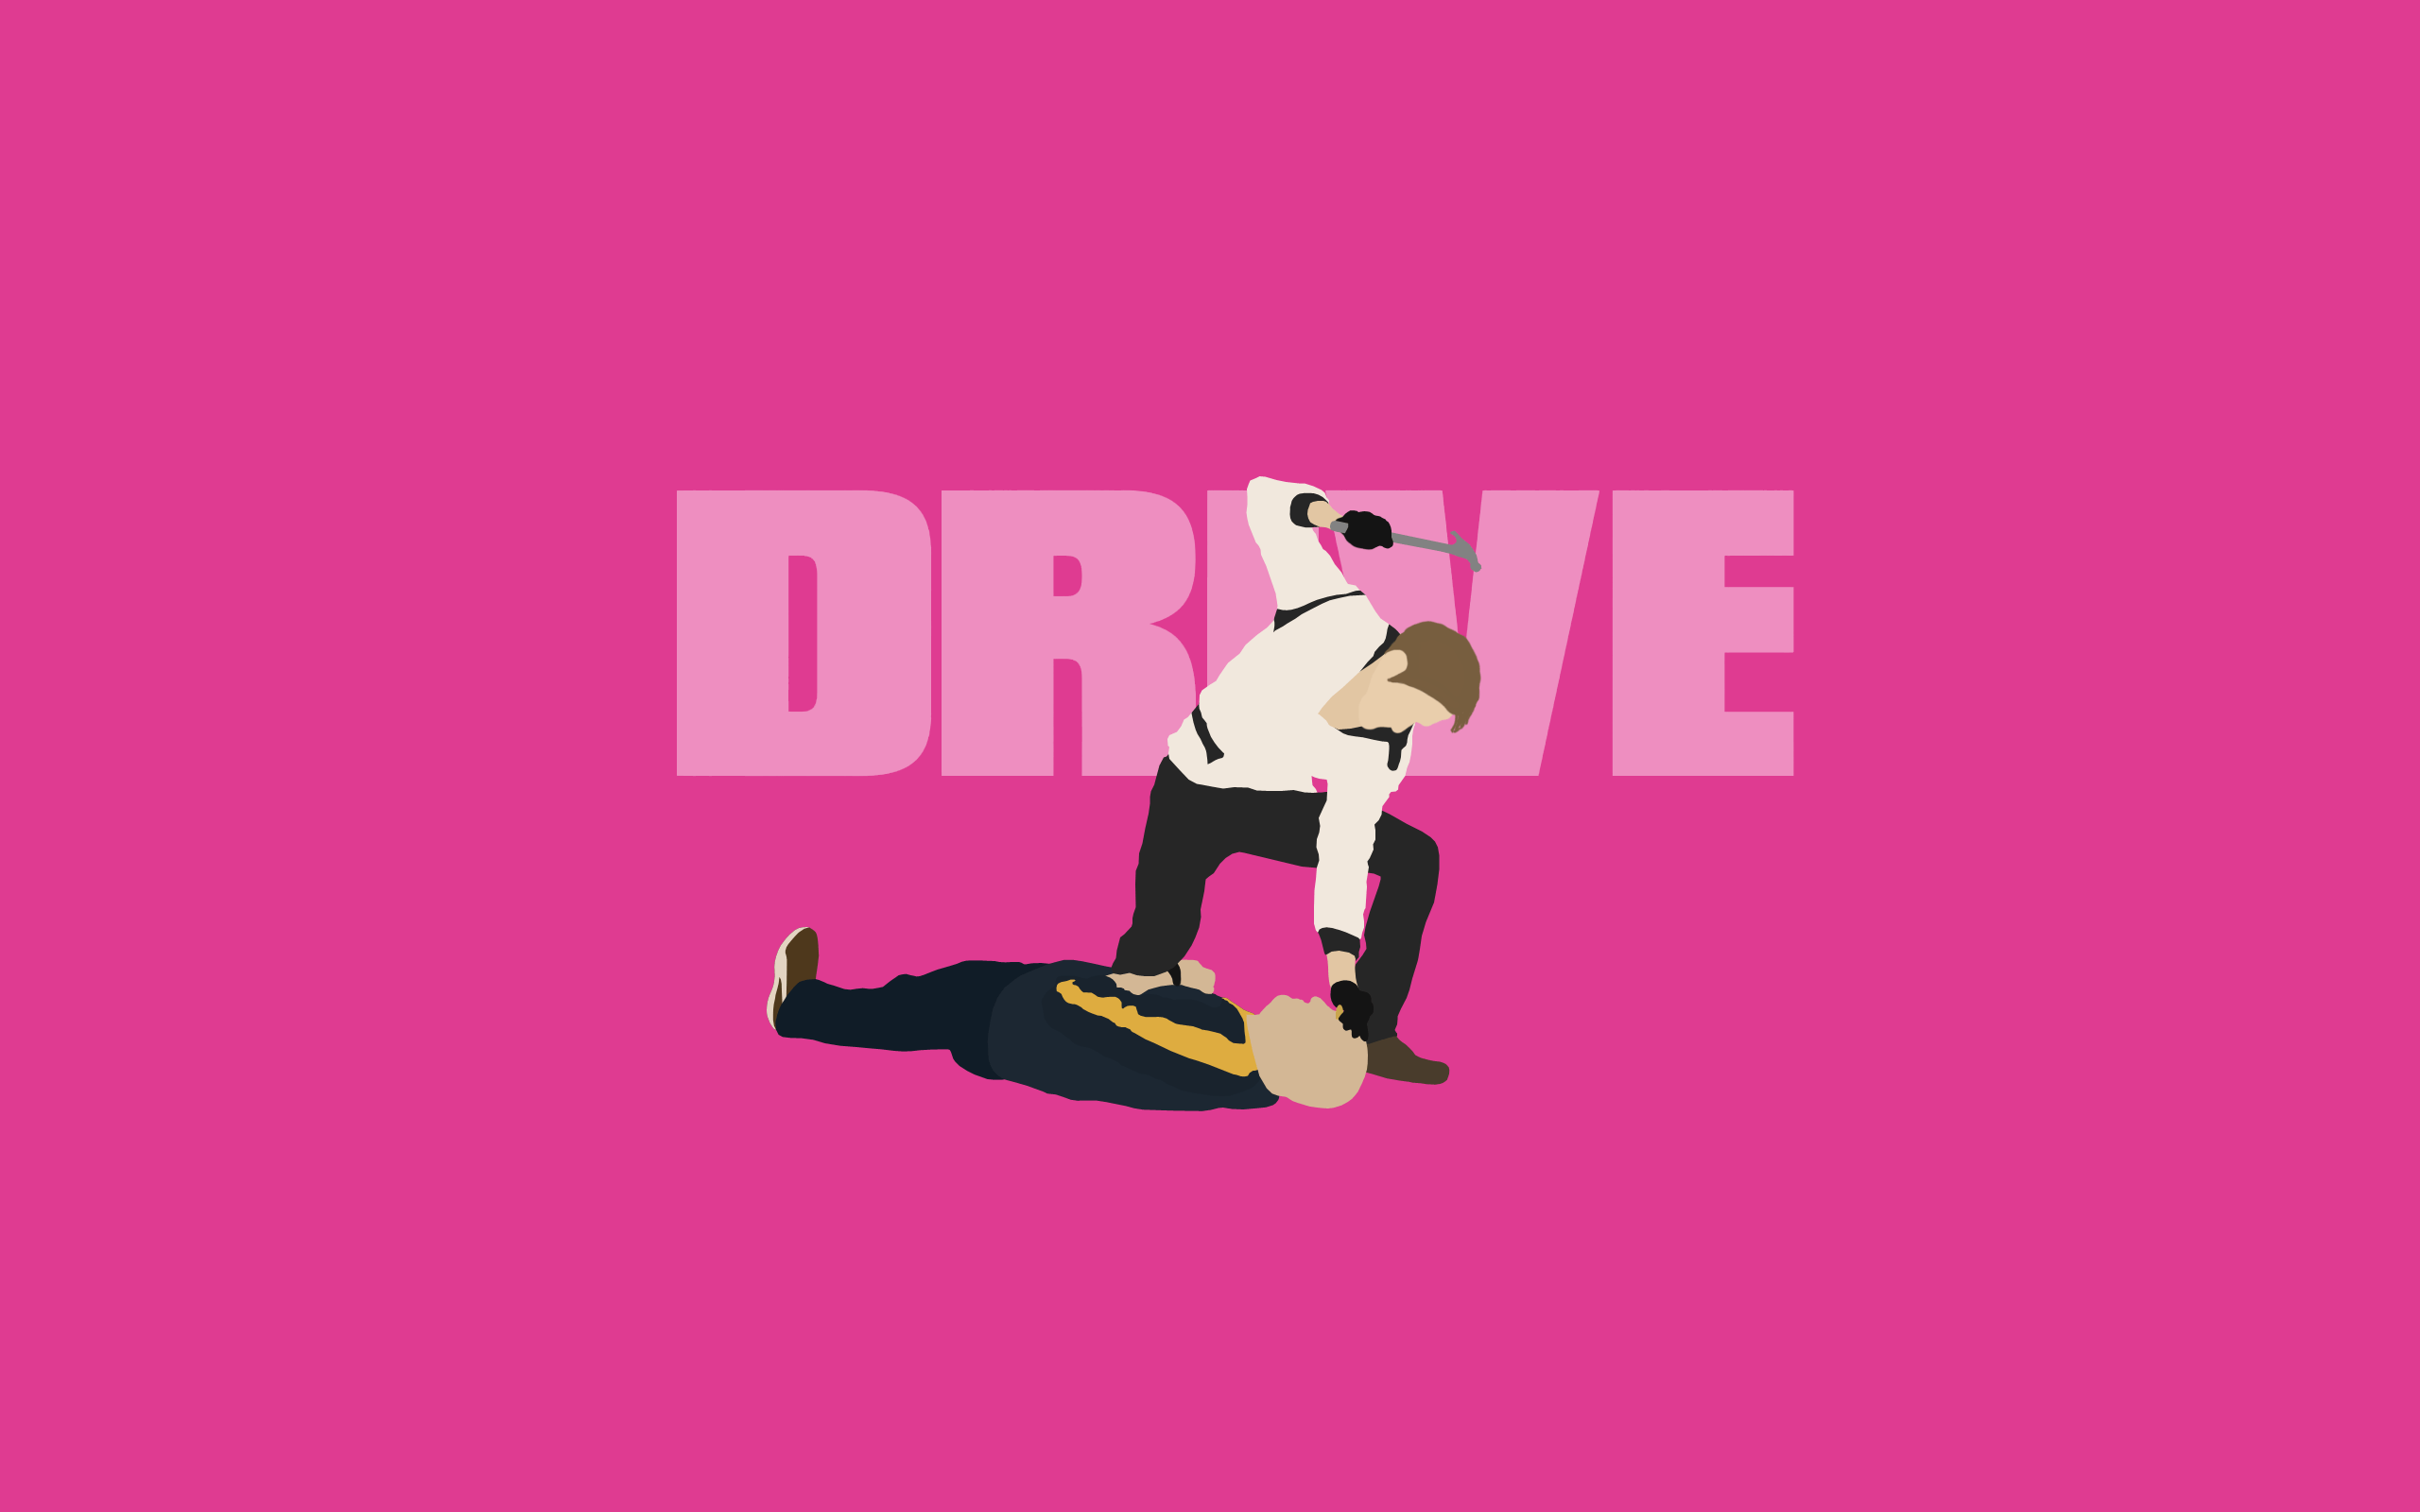 drive movie wallpaper images - photo #6